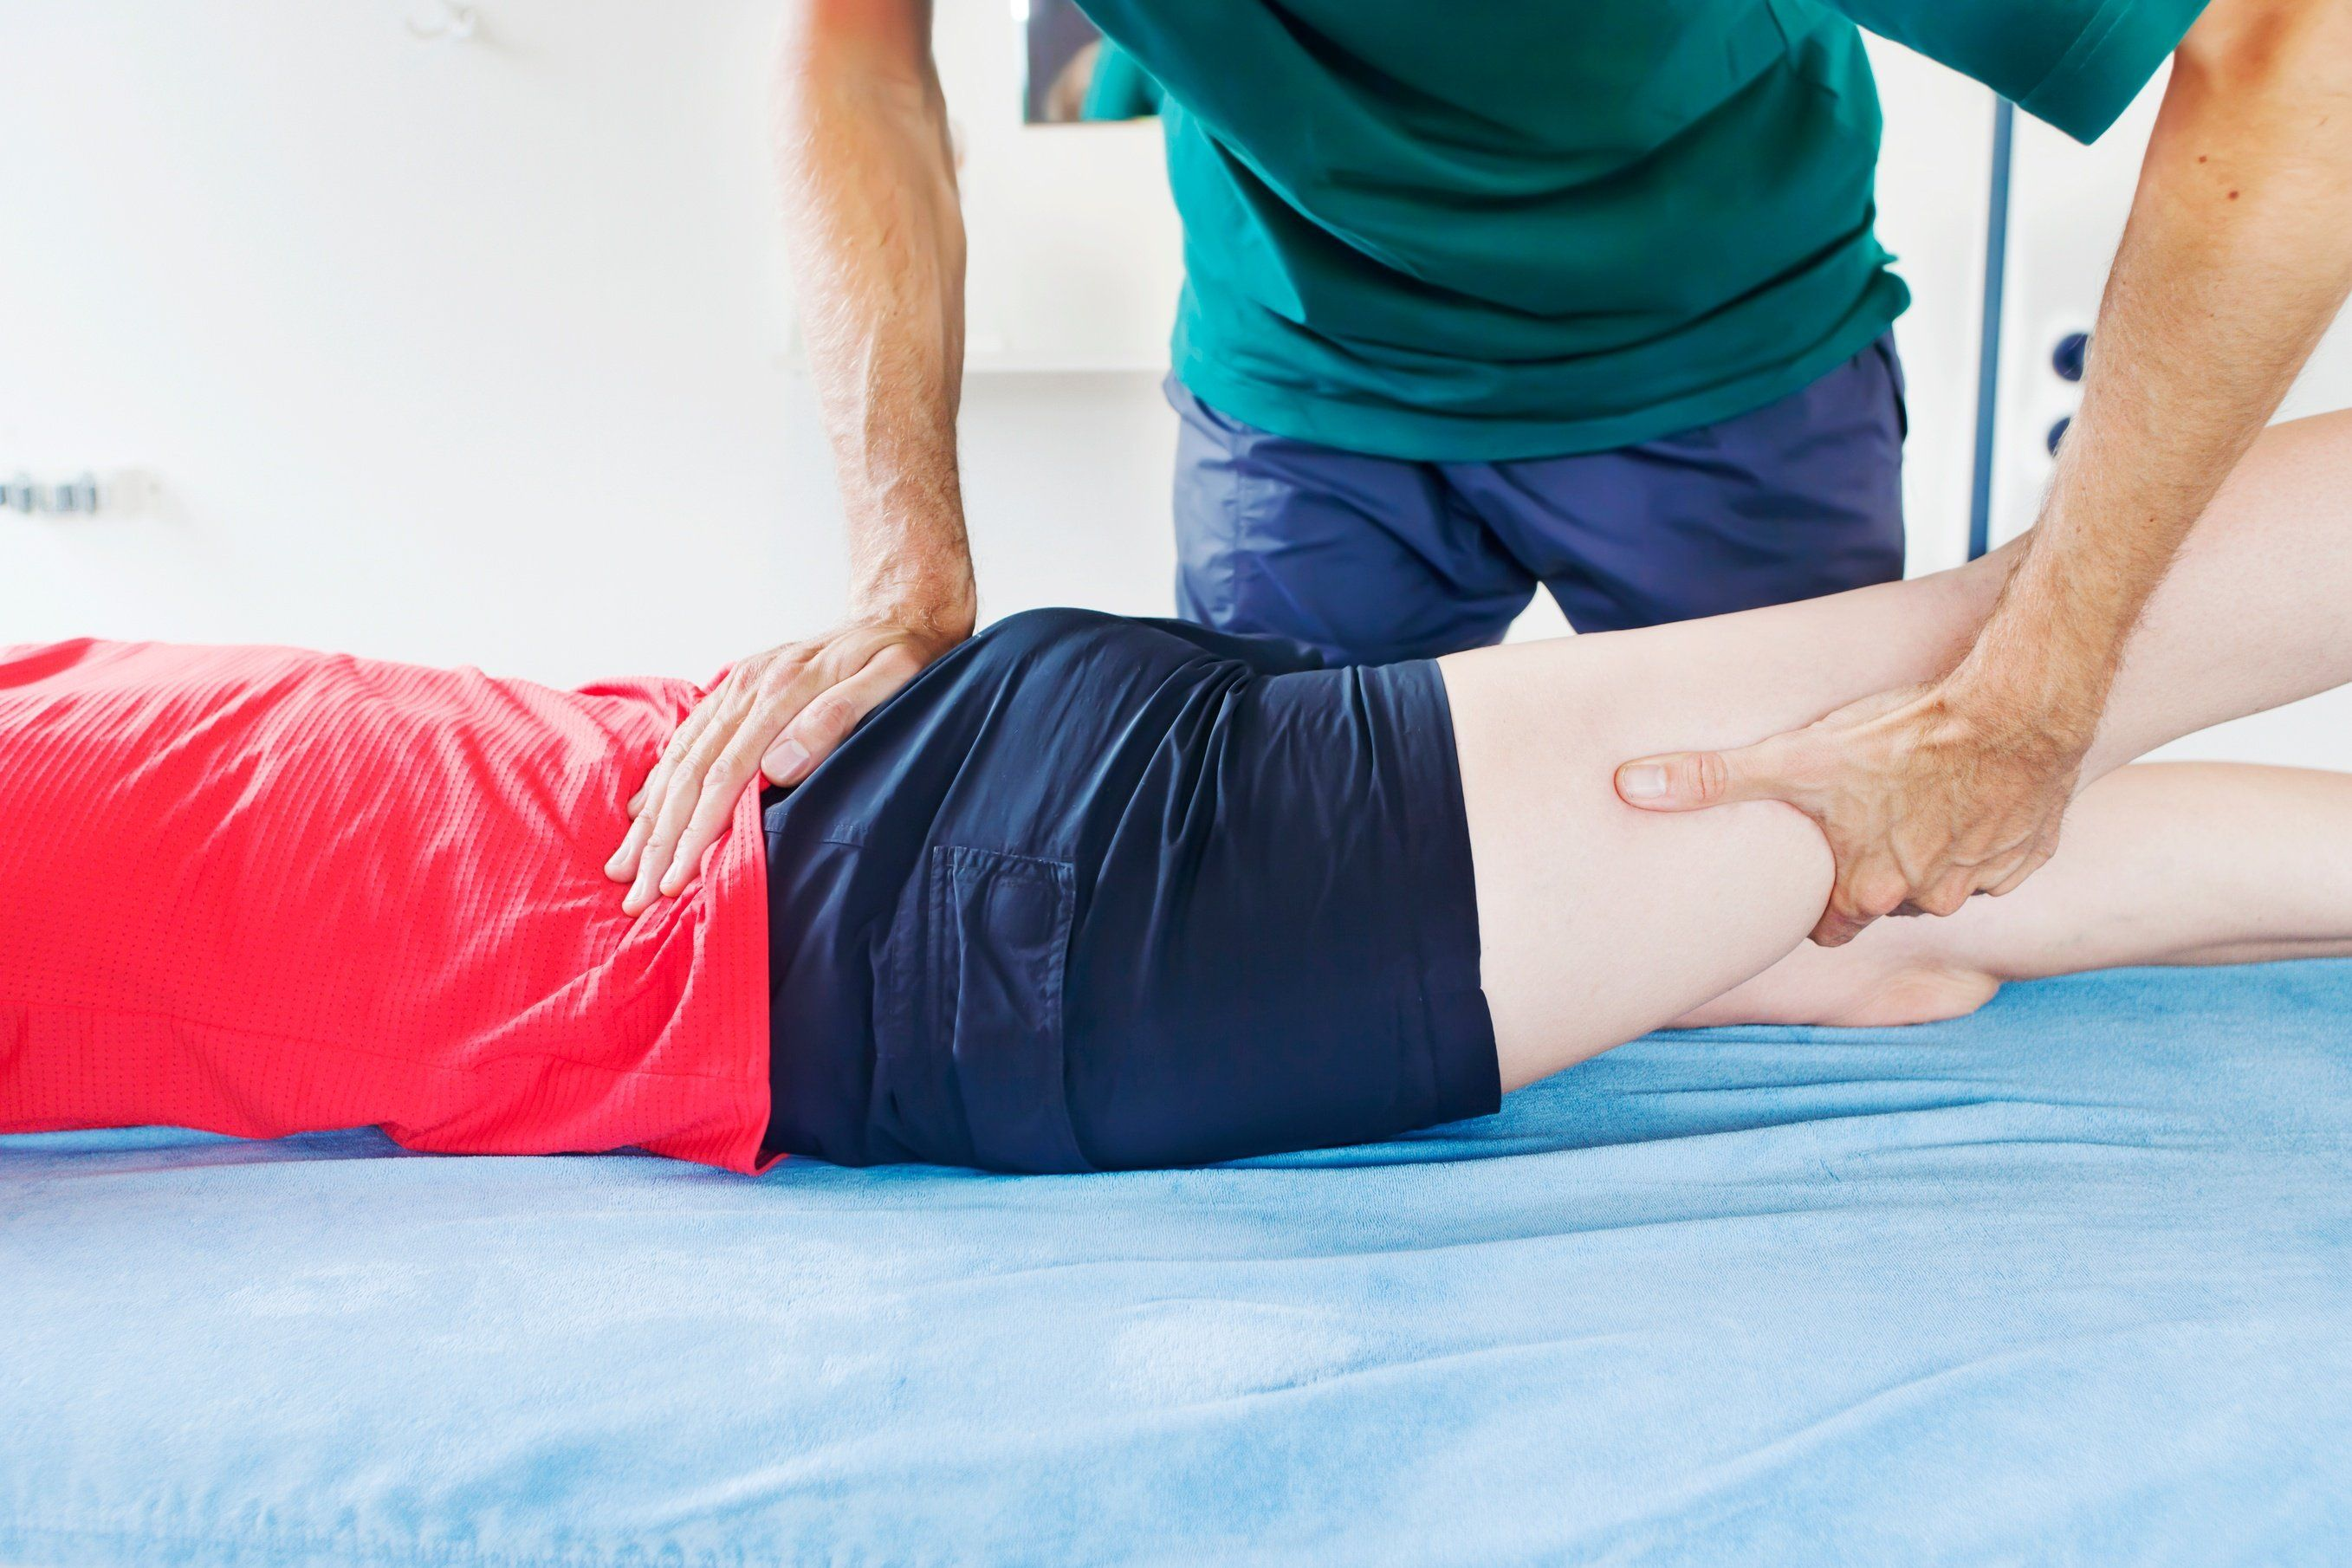 How can a chiropractor help with my injuries?